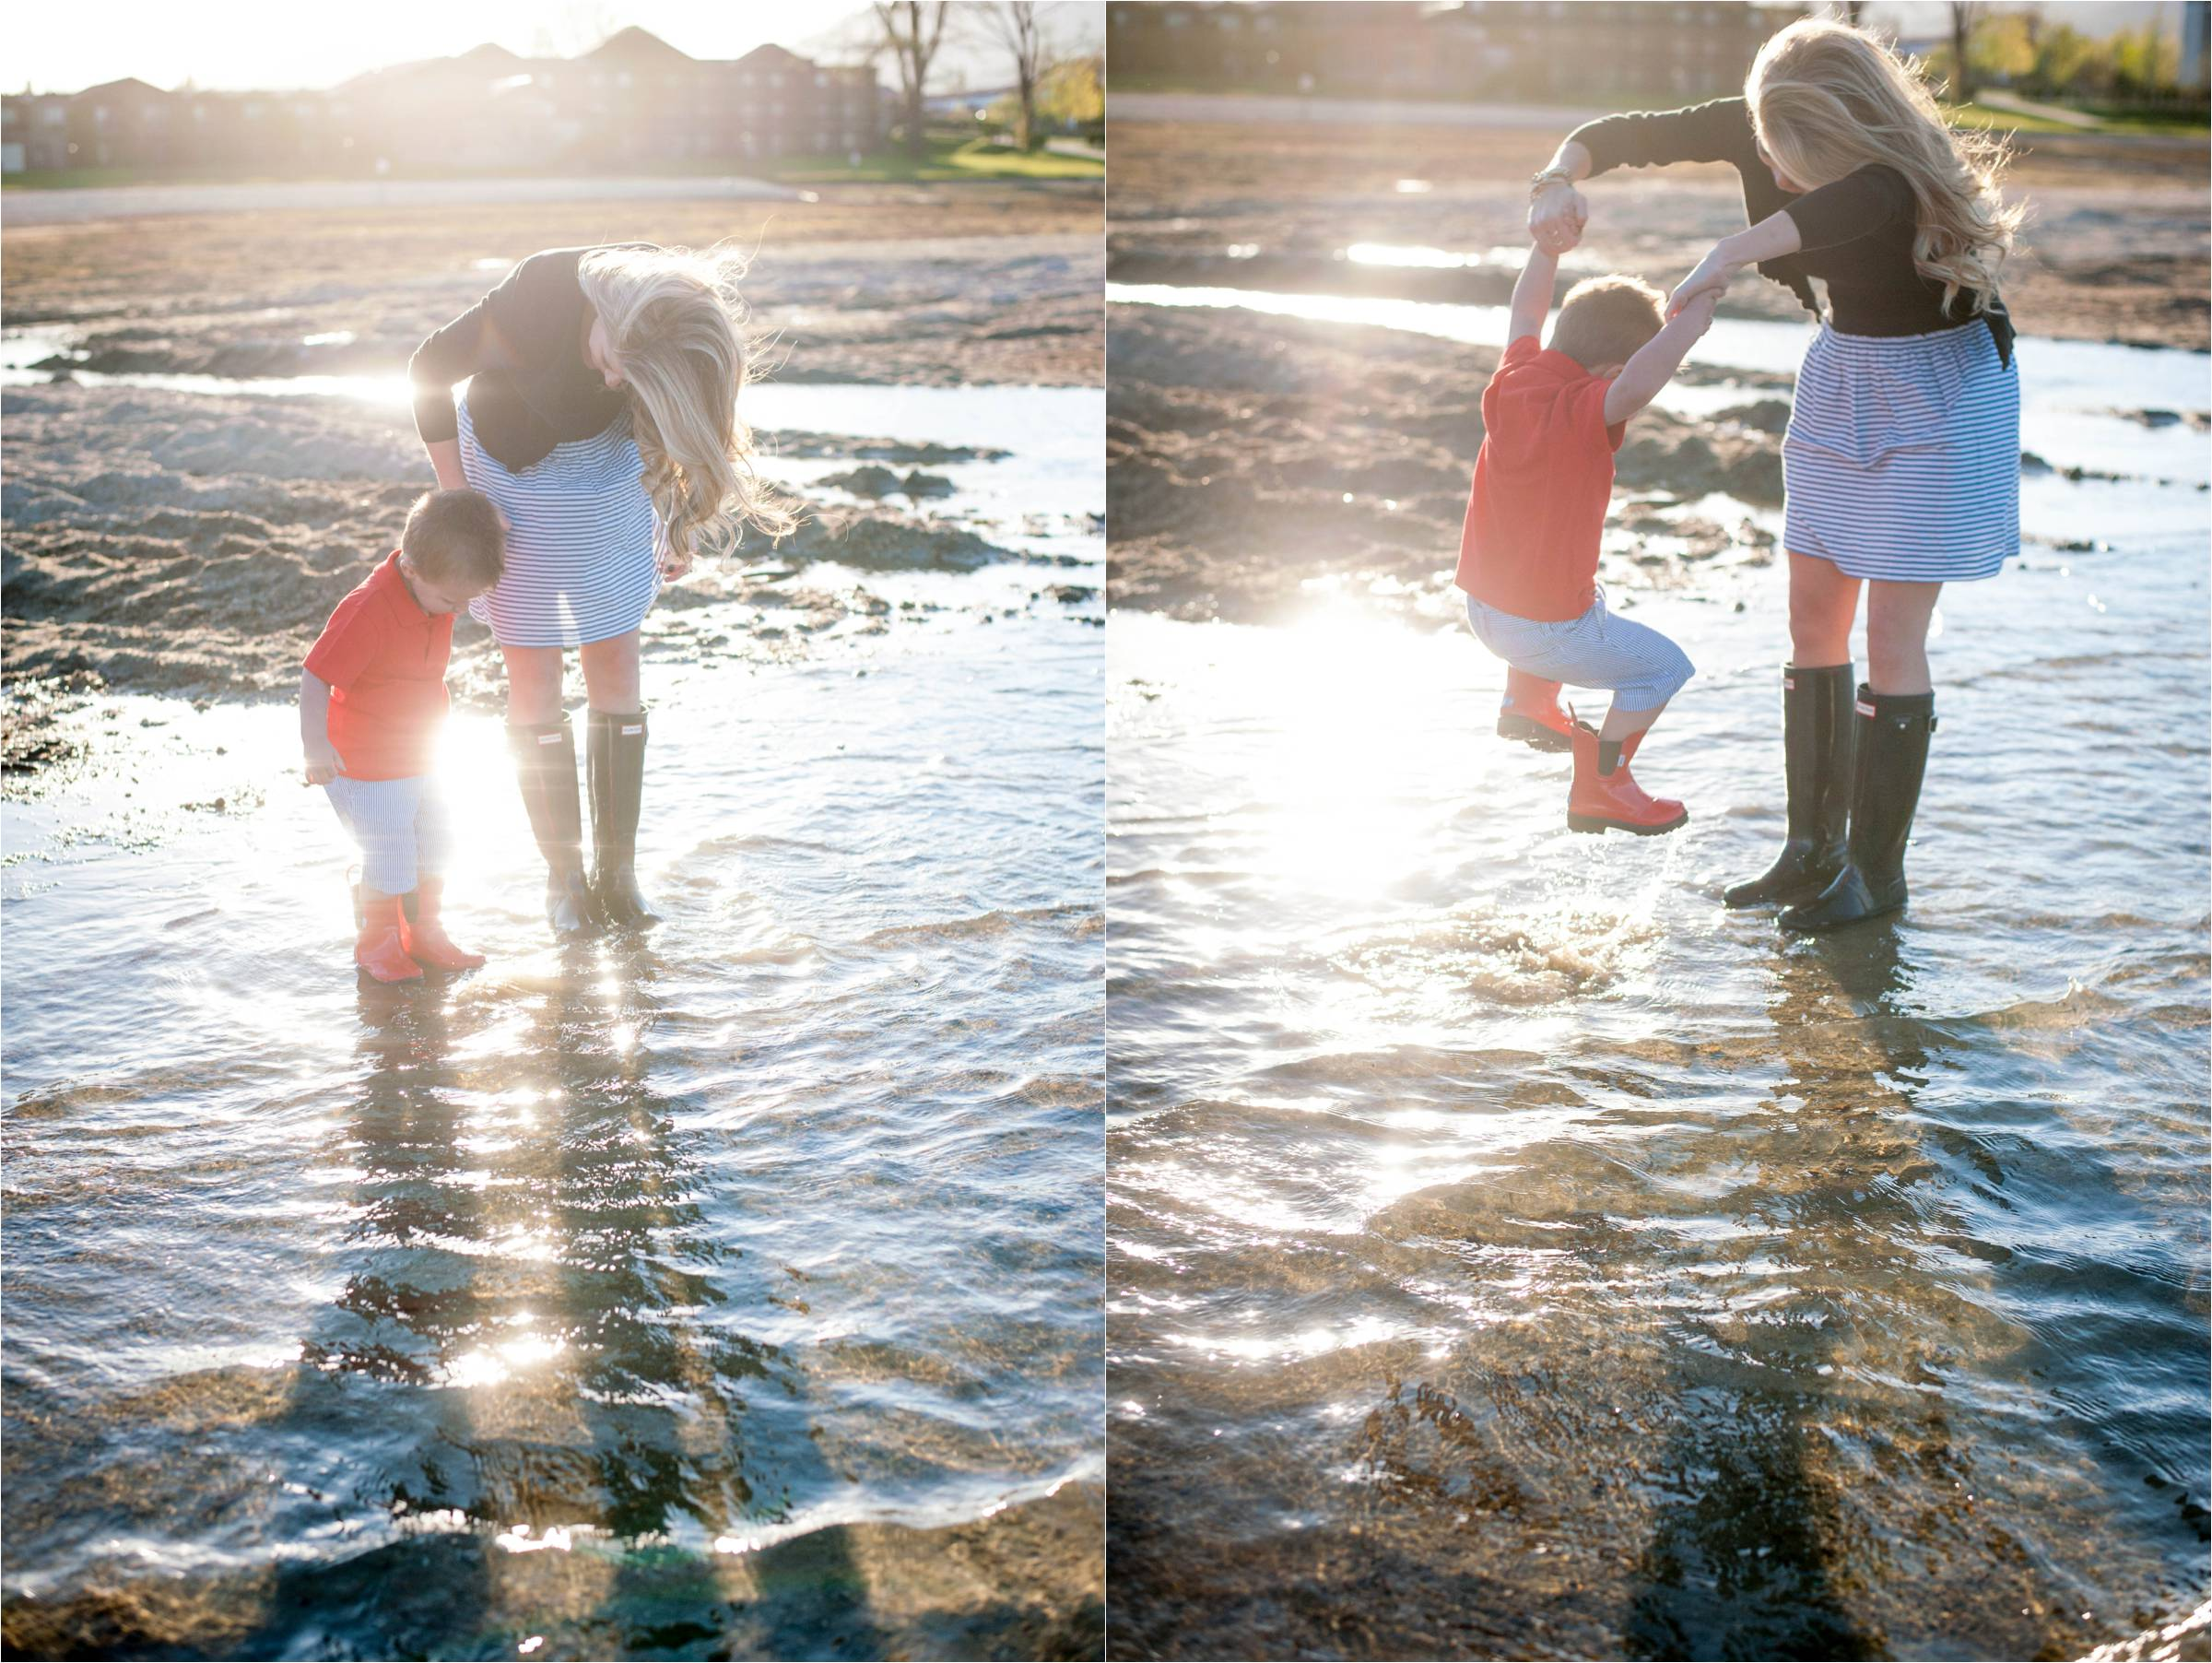 Janel-Gion-Photography-and-Design-Mommy-and-Me-Summer-Photo-Session-Sandpoint-Idaho_0010.jpg